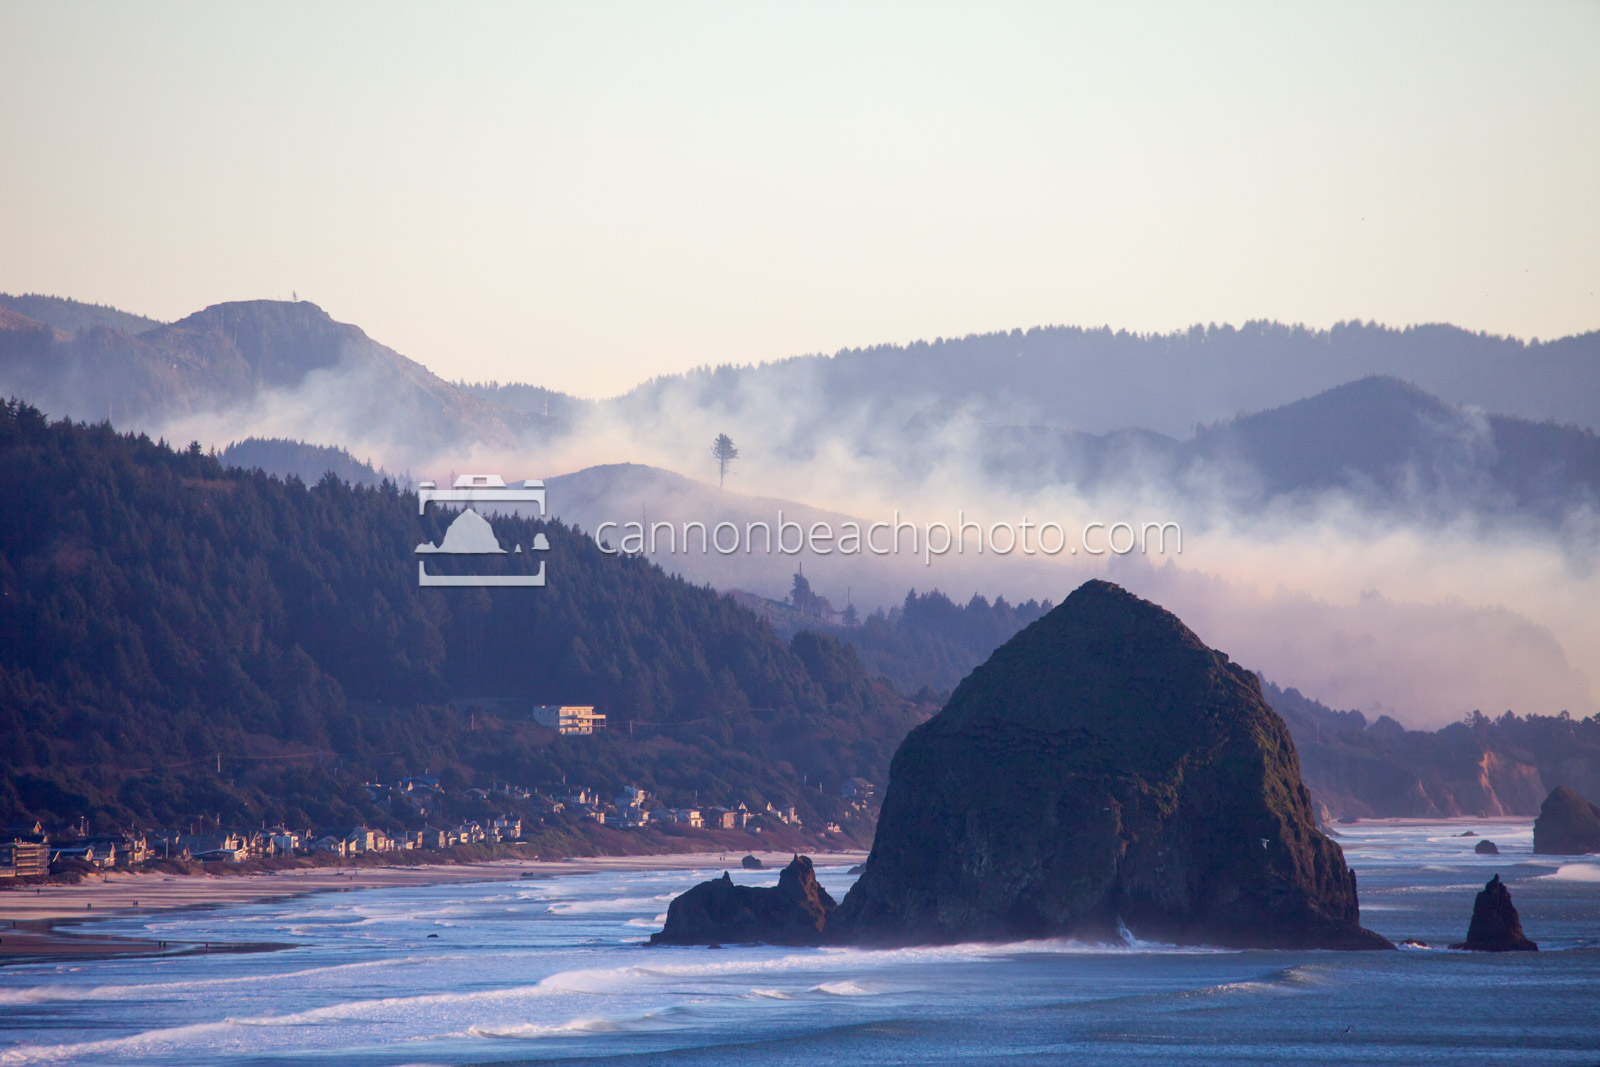 Fire in the Hills Behind Cannon Beach